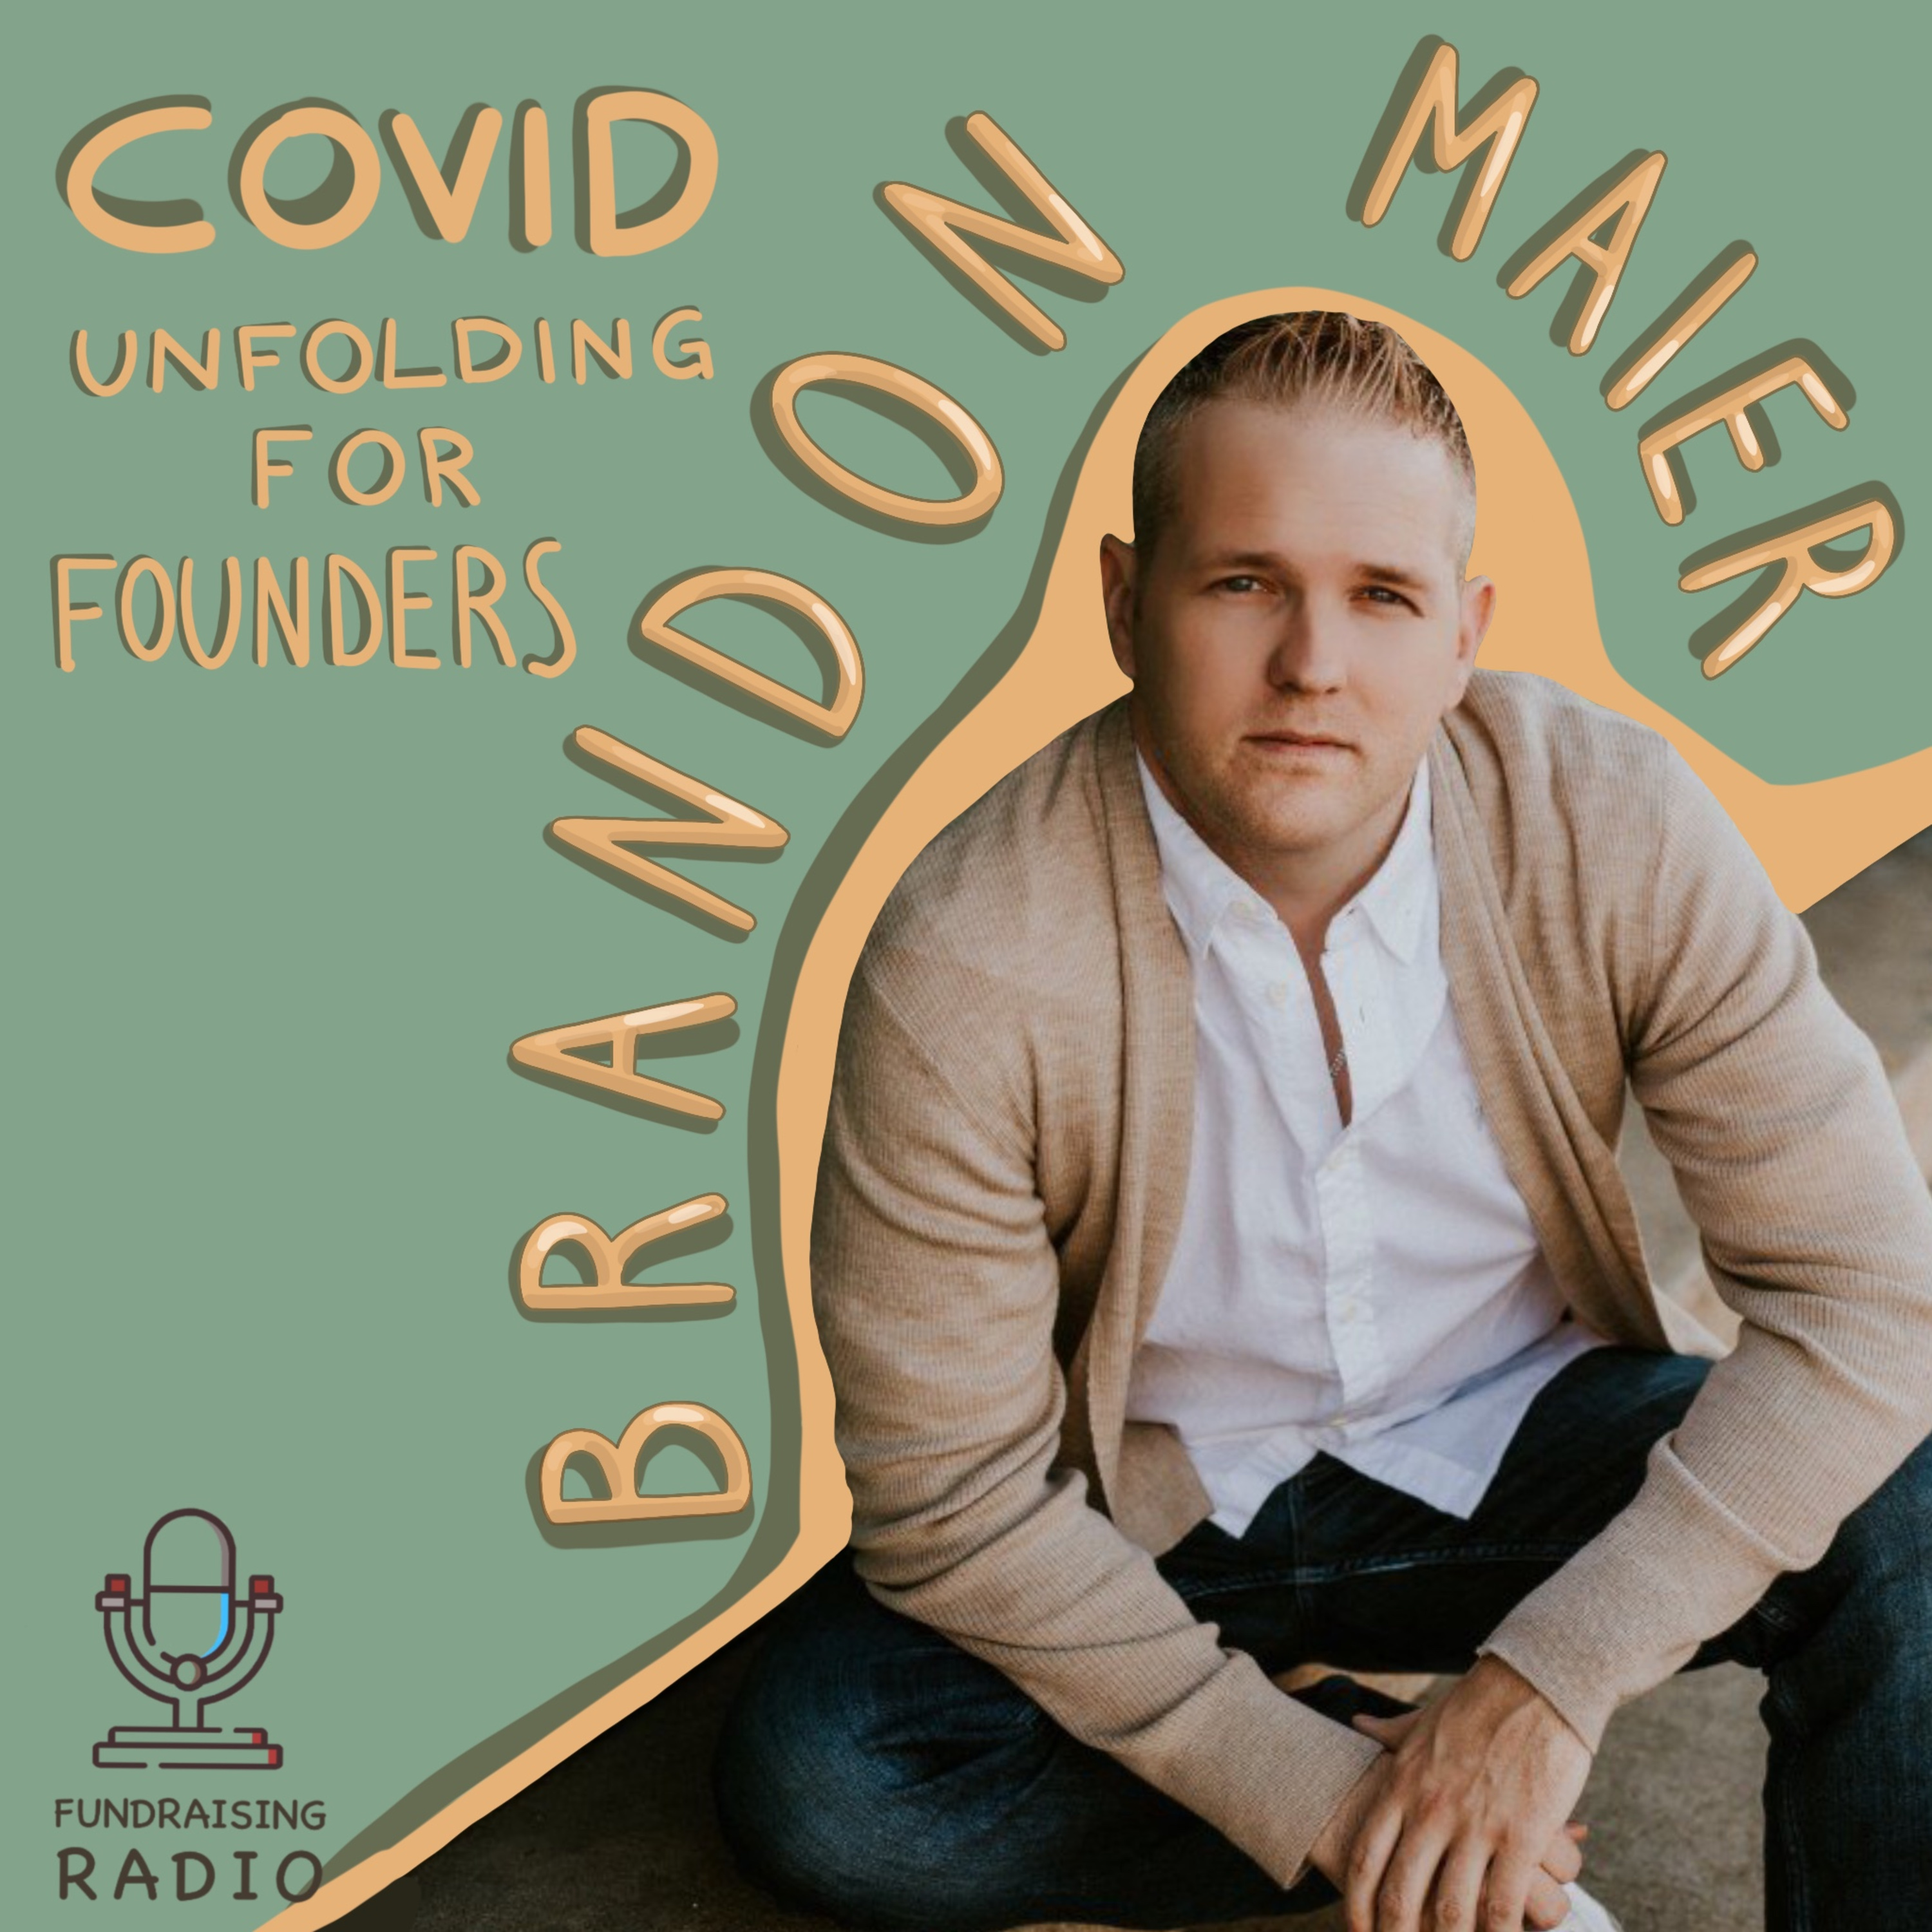 Covid unfolding for founders - how to react and where to go during these times, by Brandon Maier.